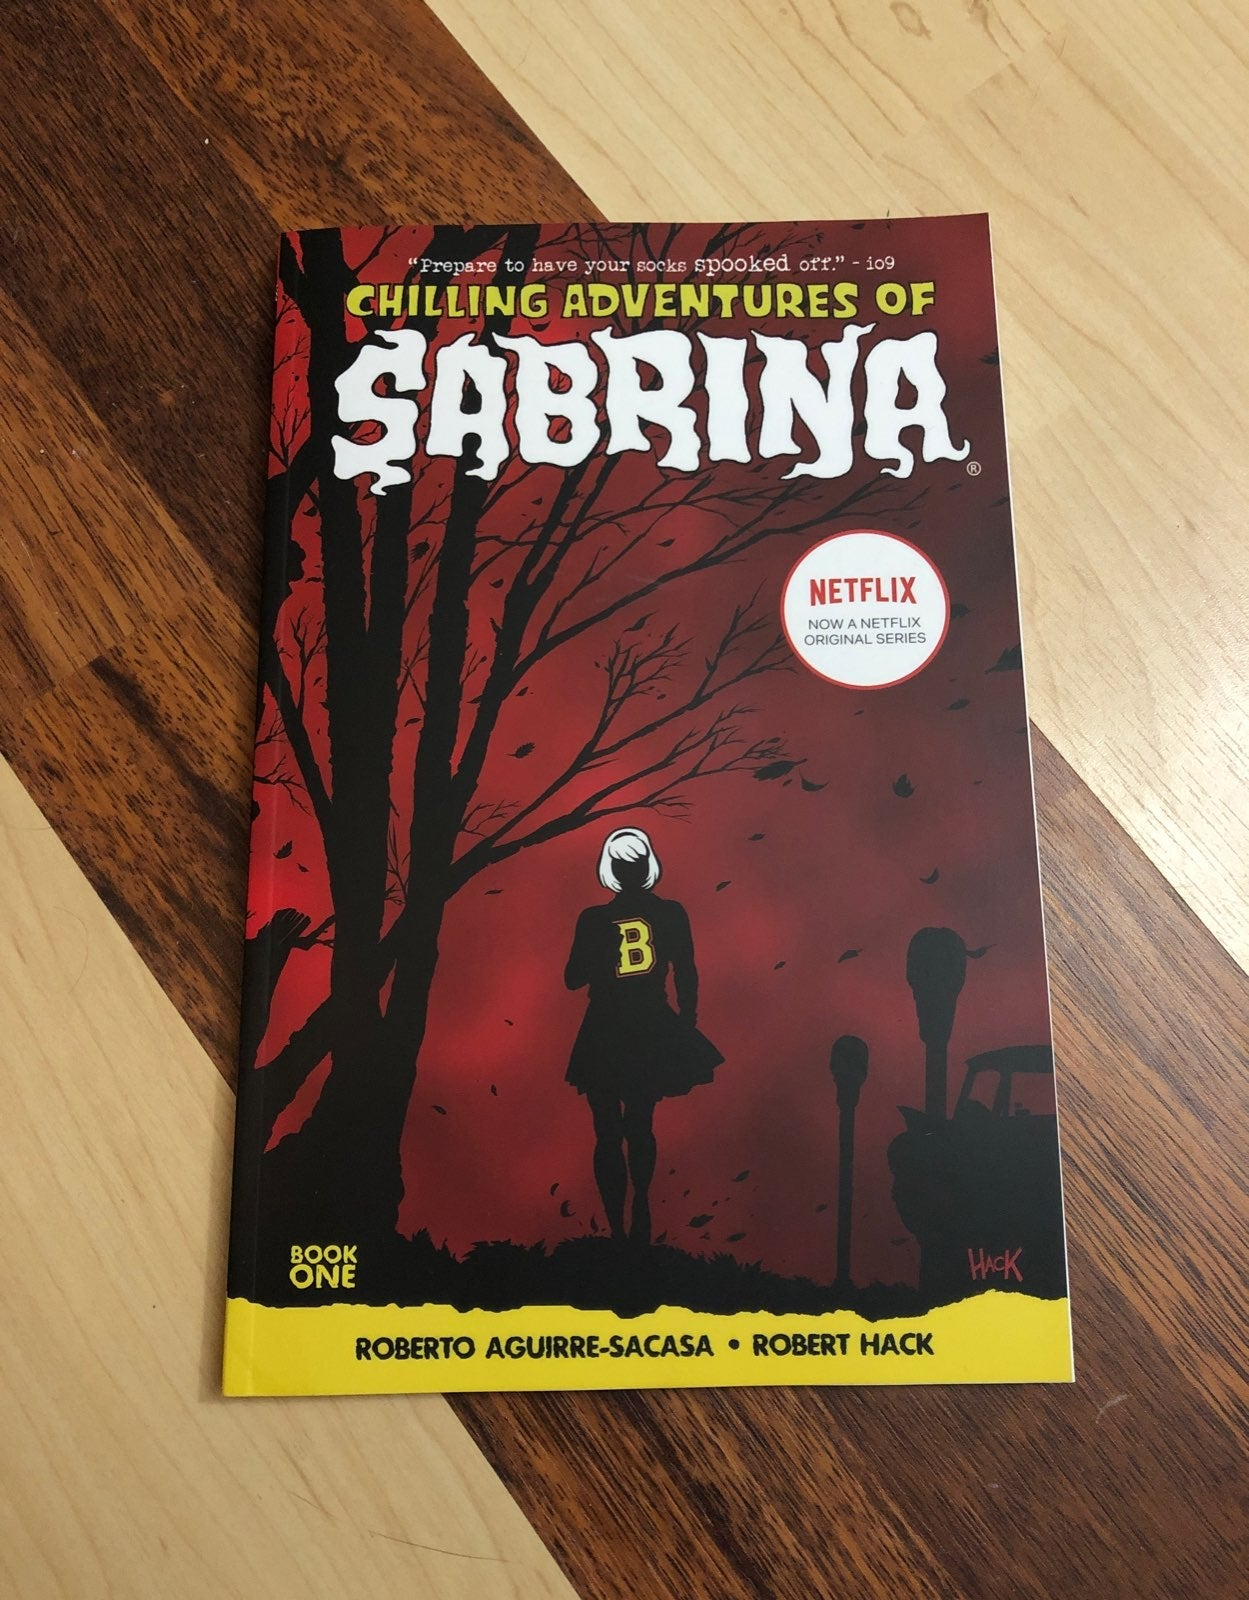 Chilling Adventures of Sabrina volume 1